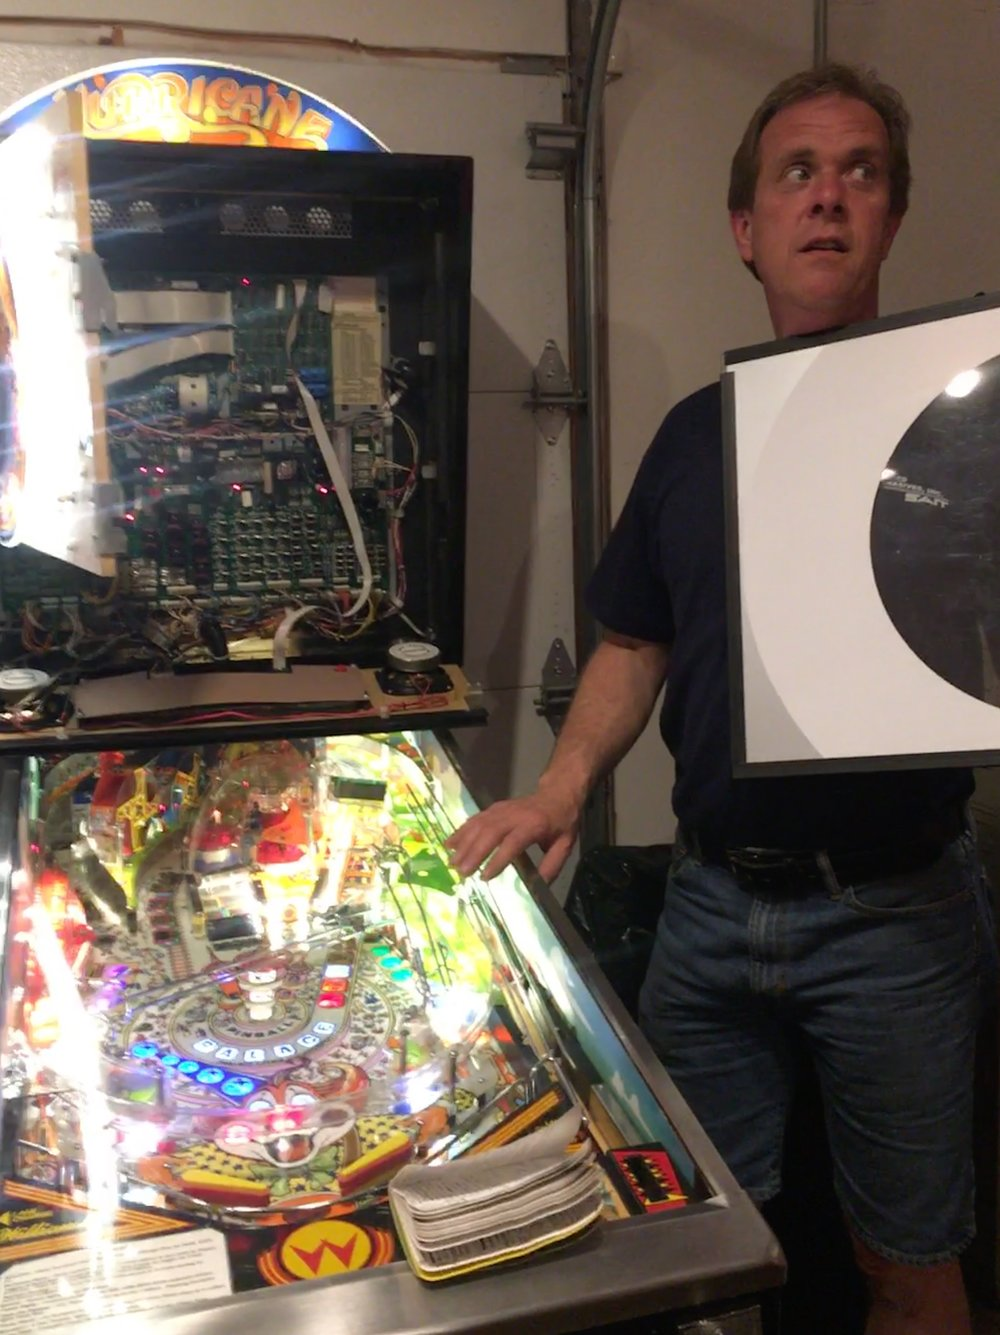 Chuck Sanderson standing next to a pinball machine opened up.